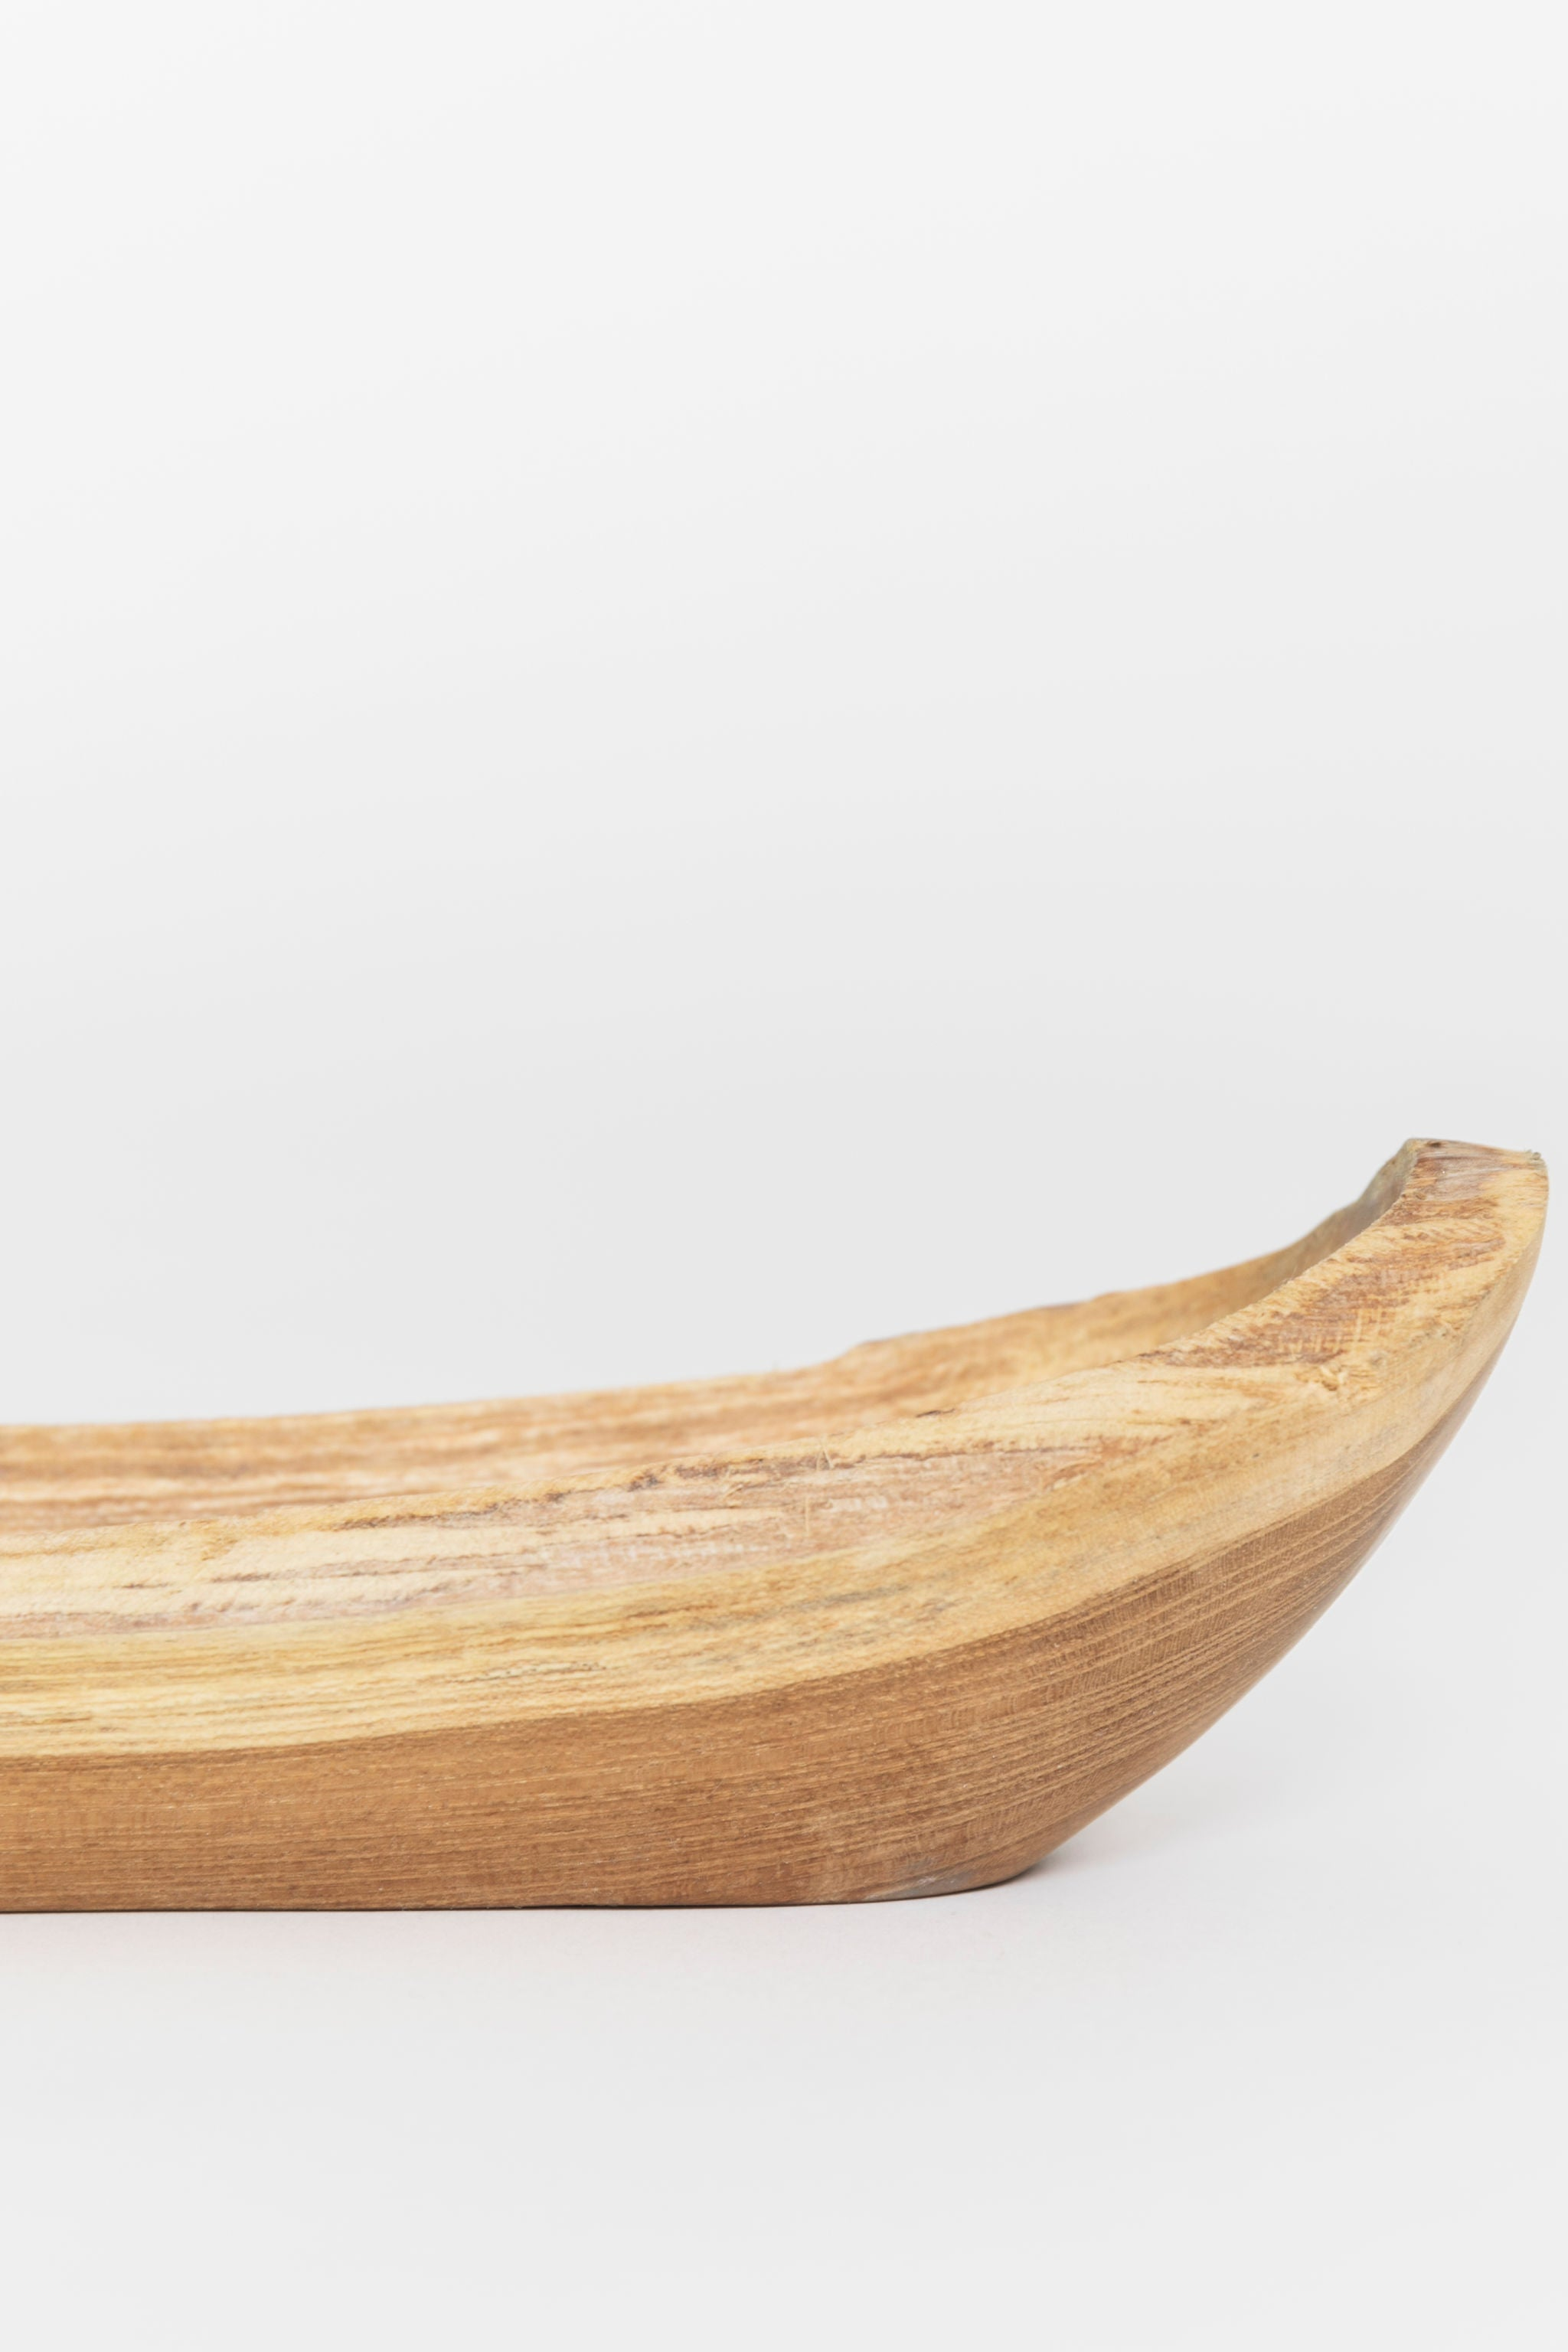 Hand Carved Teak Wood Bowl